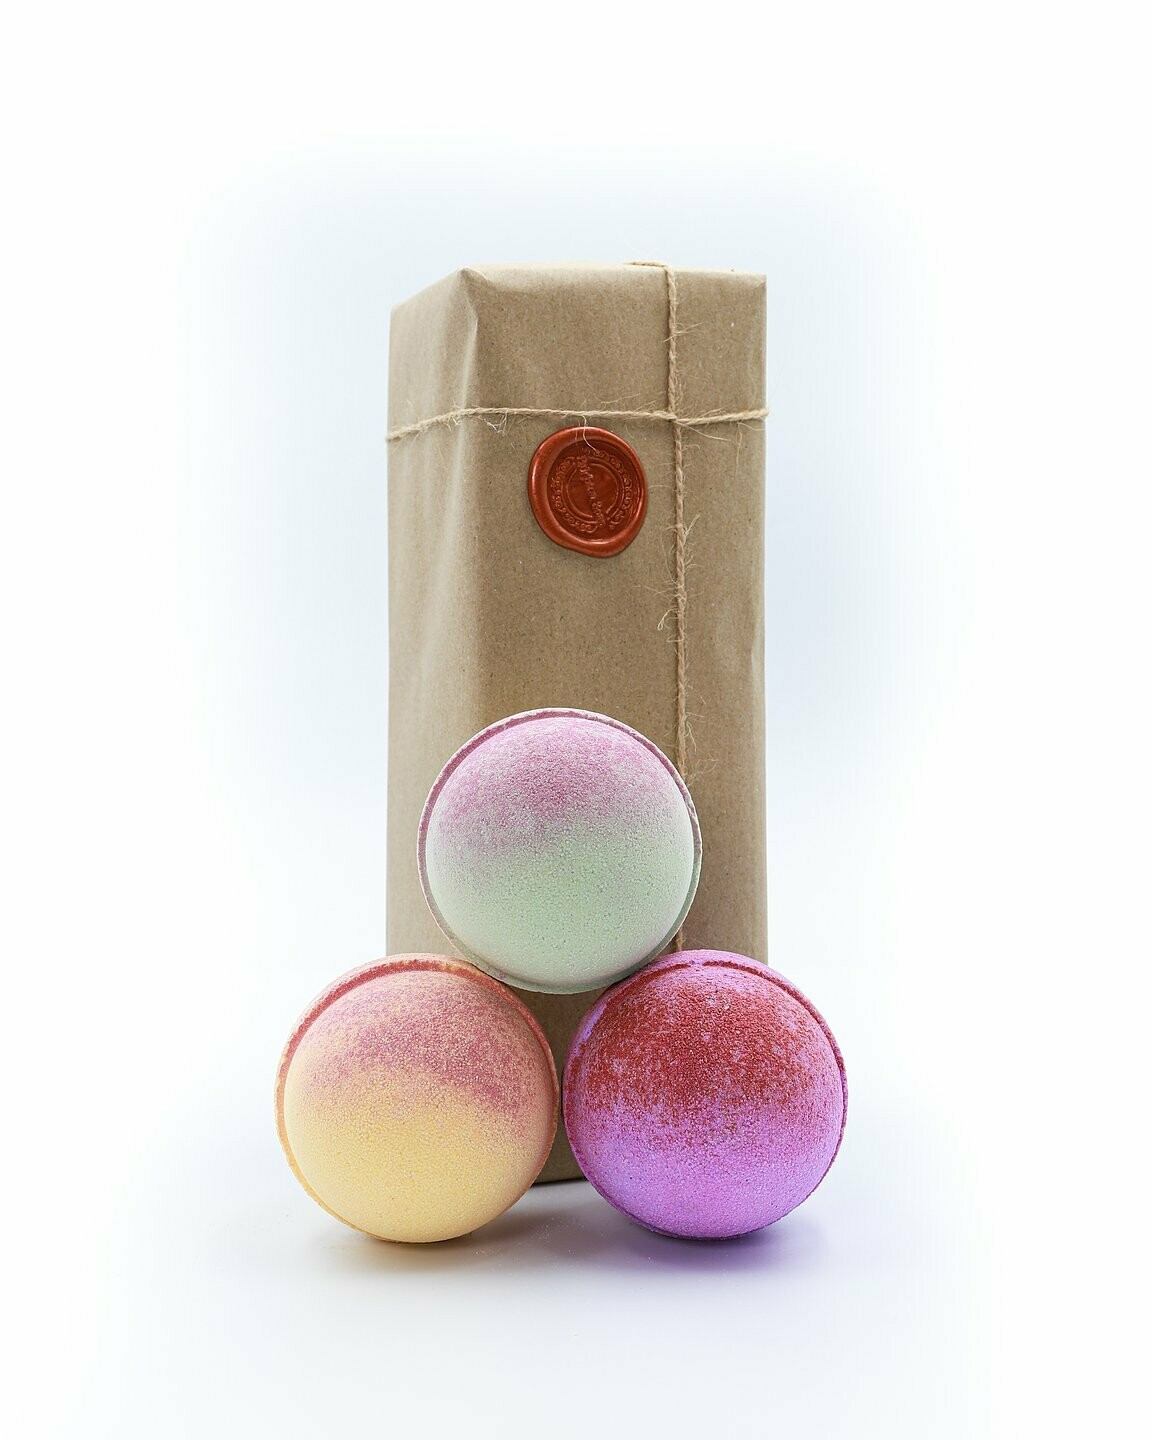 Cherry Apple, Pink Lemonade, Midnight Pomegranate Bath Bomb Gift Set